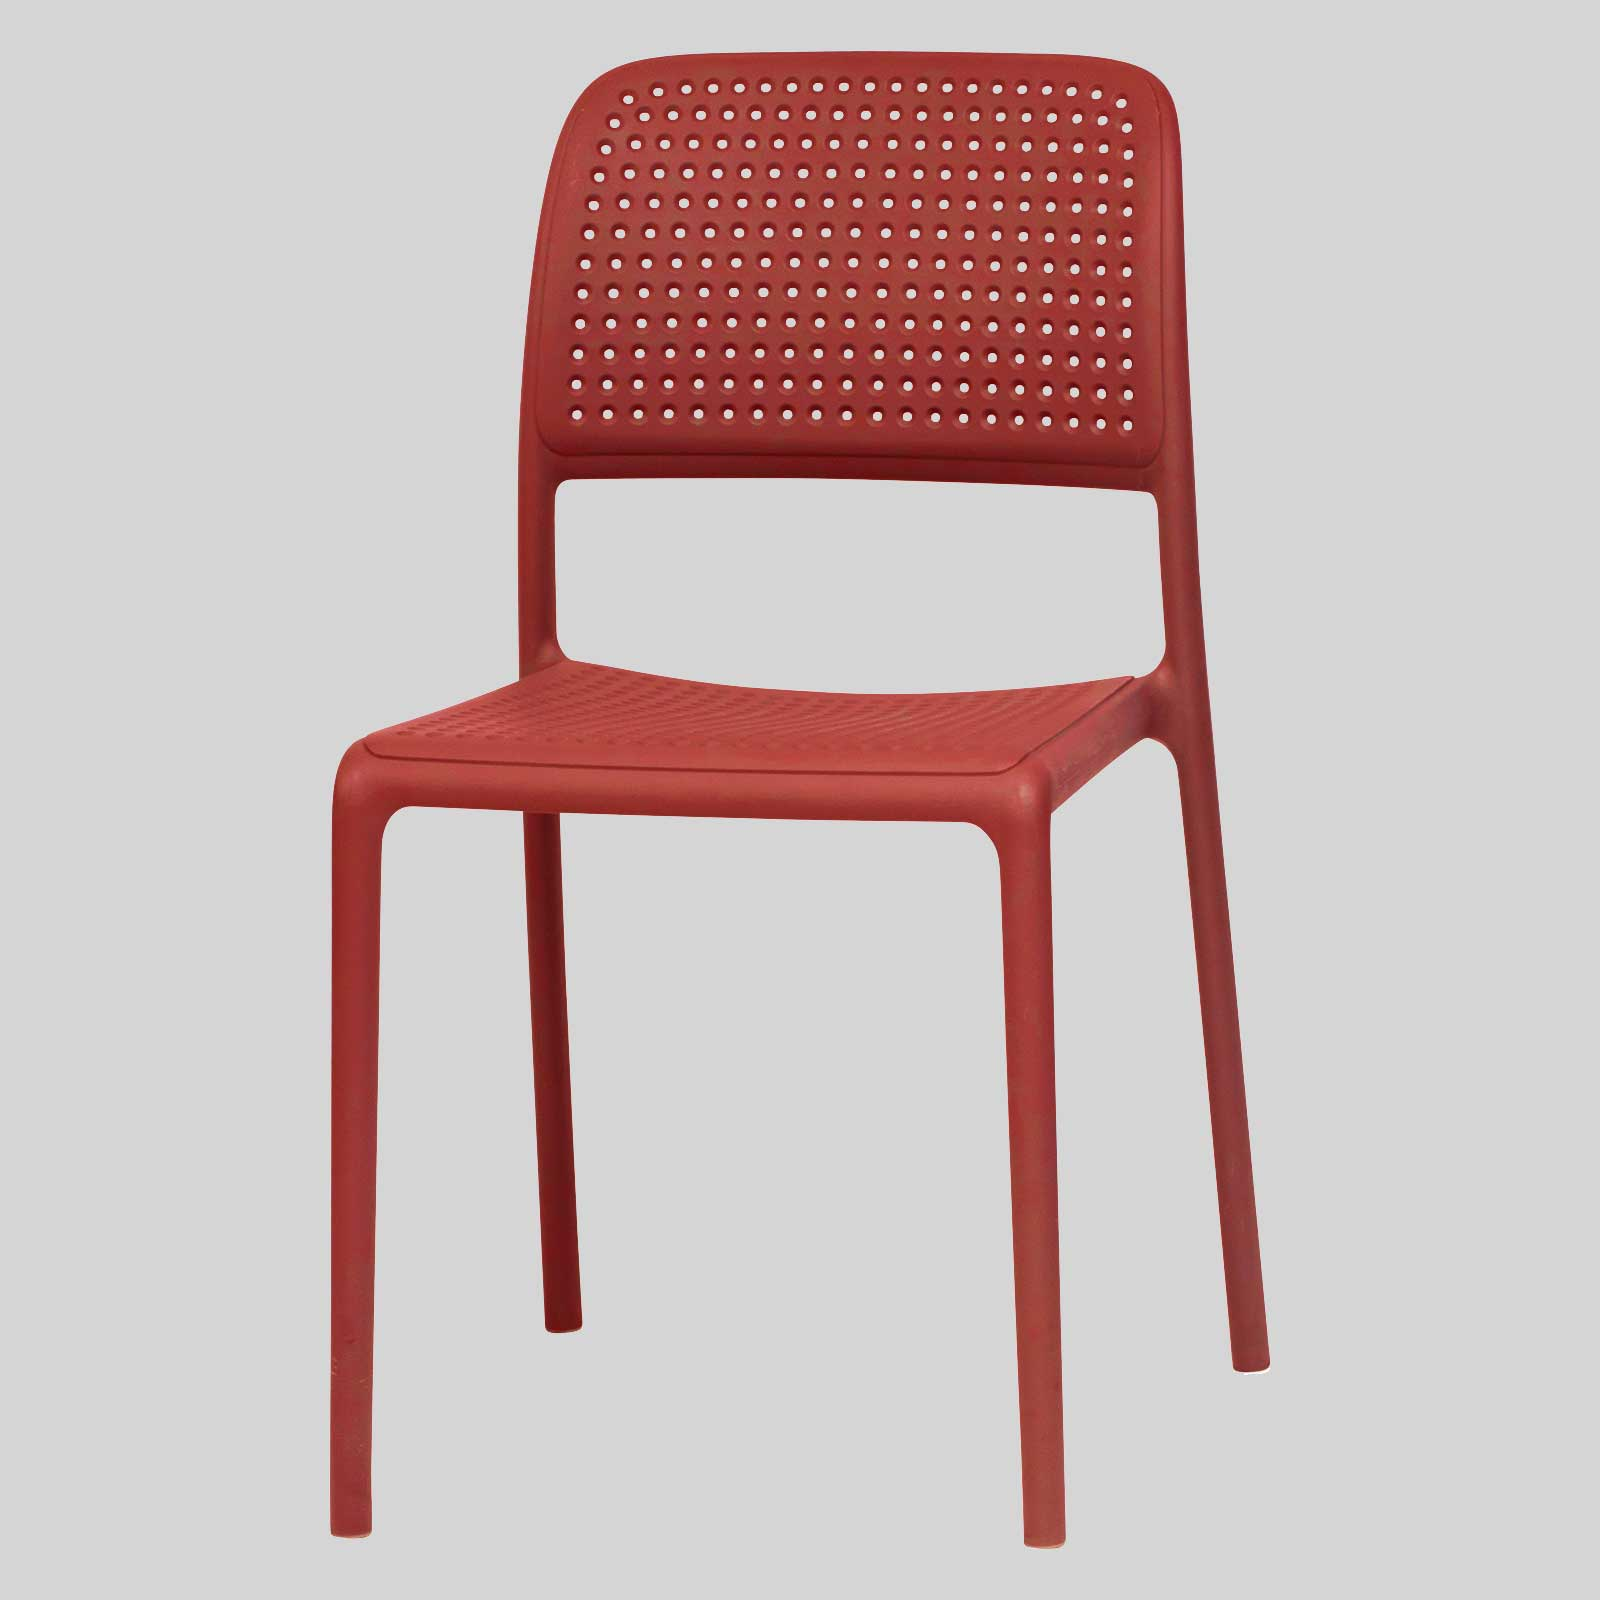 Plastic Chairs For Outdoor Venues Dora Concept Collections